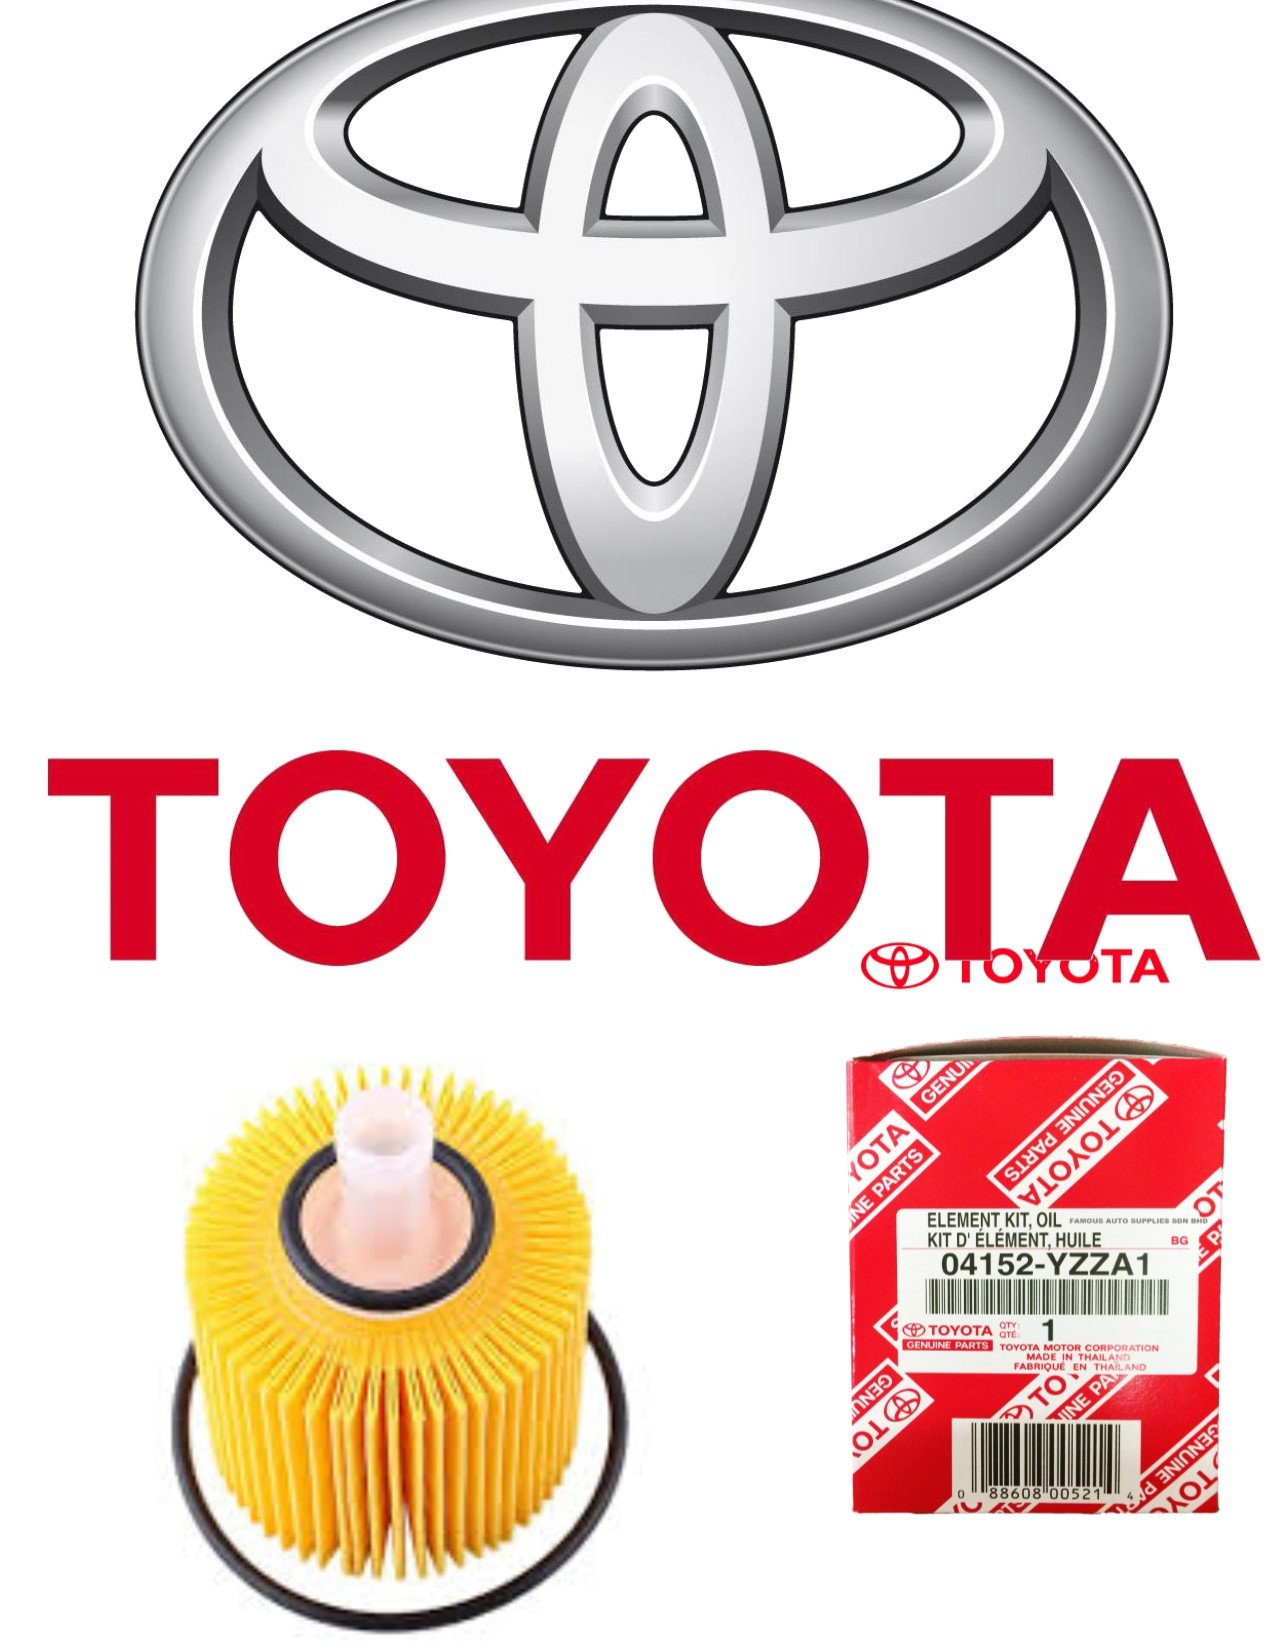 GENUINE TOYOTA OIL FILTER with WRENCH ASPG ZTOOL PREMIUM for 2.5L 3.5L to 5.7L Engines - Perfect for Camry, RAV4, Highlander, Sienna, Tundra and More - Fits 64mm Cartridge Style Oil Filter Housings by APSG (Image #5)